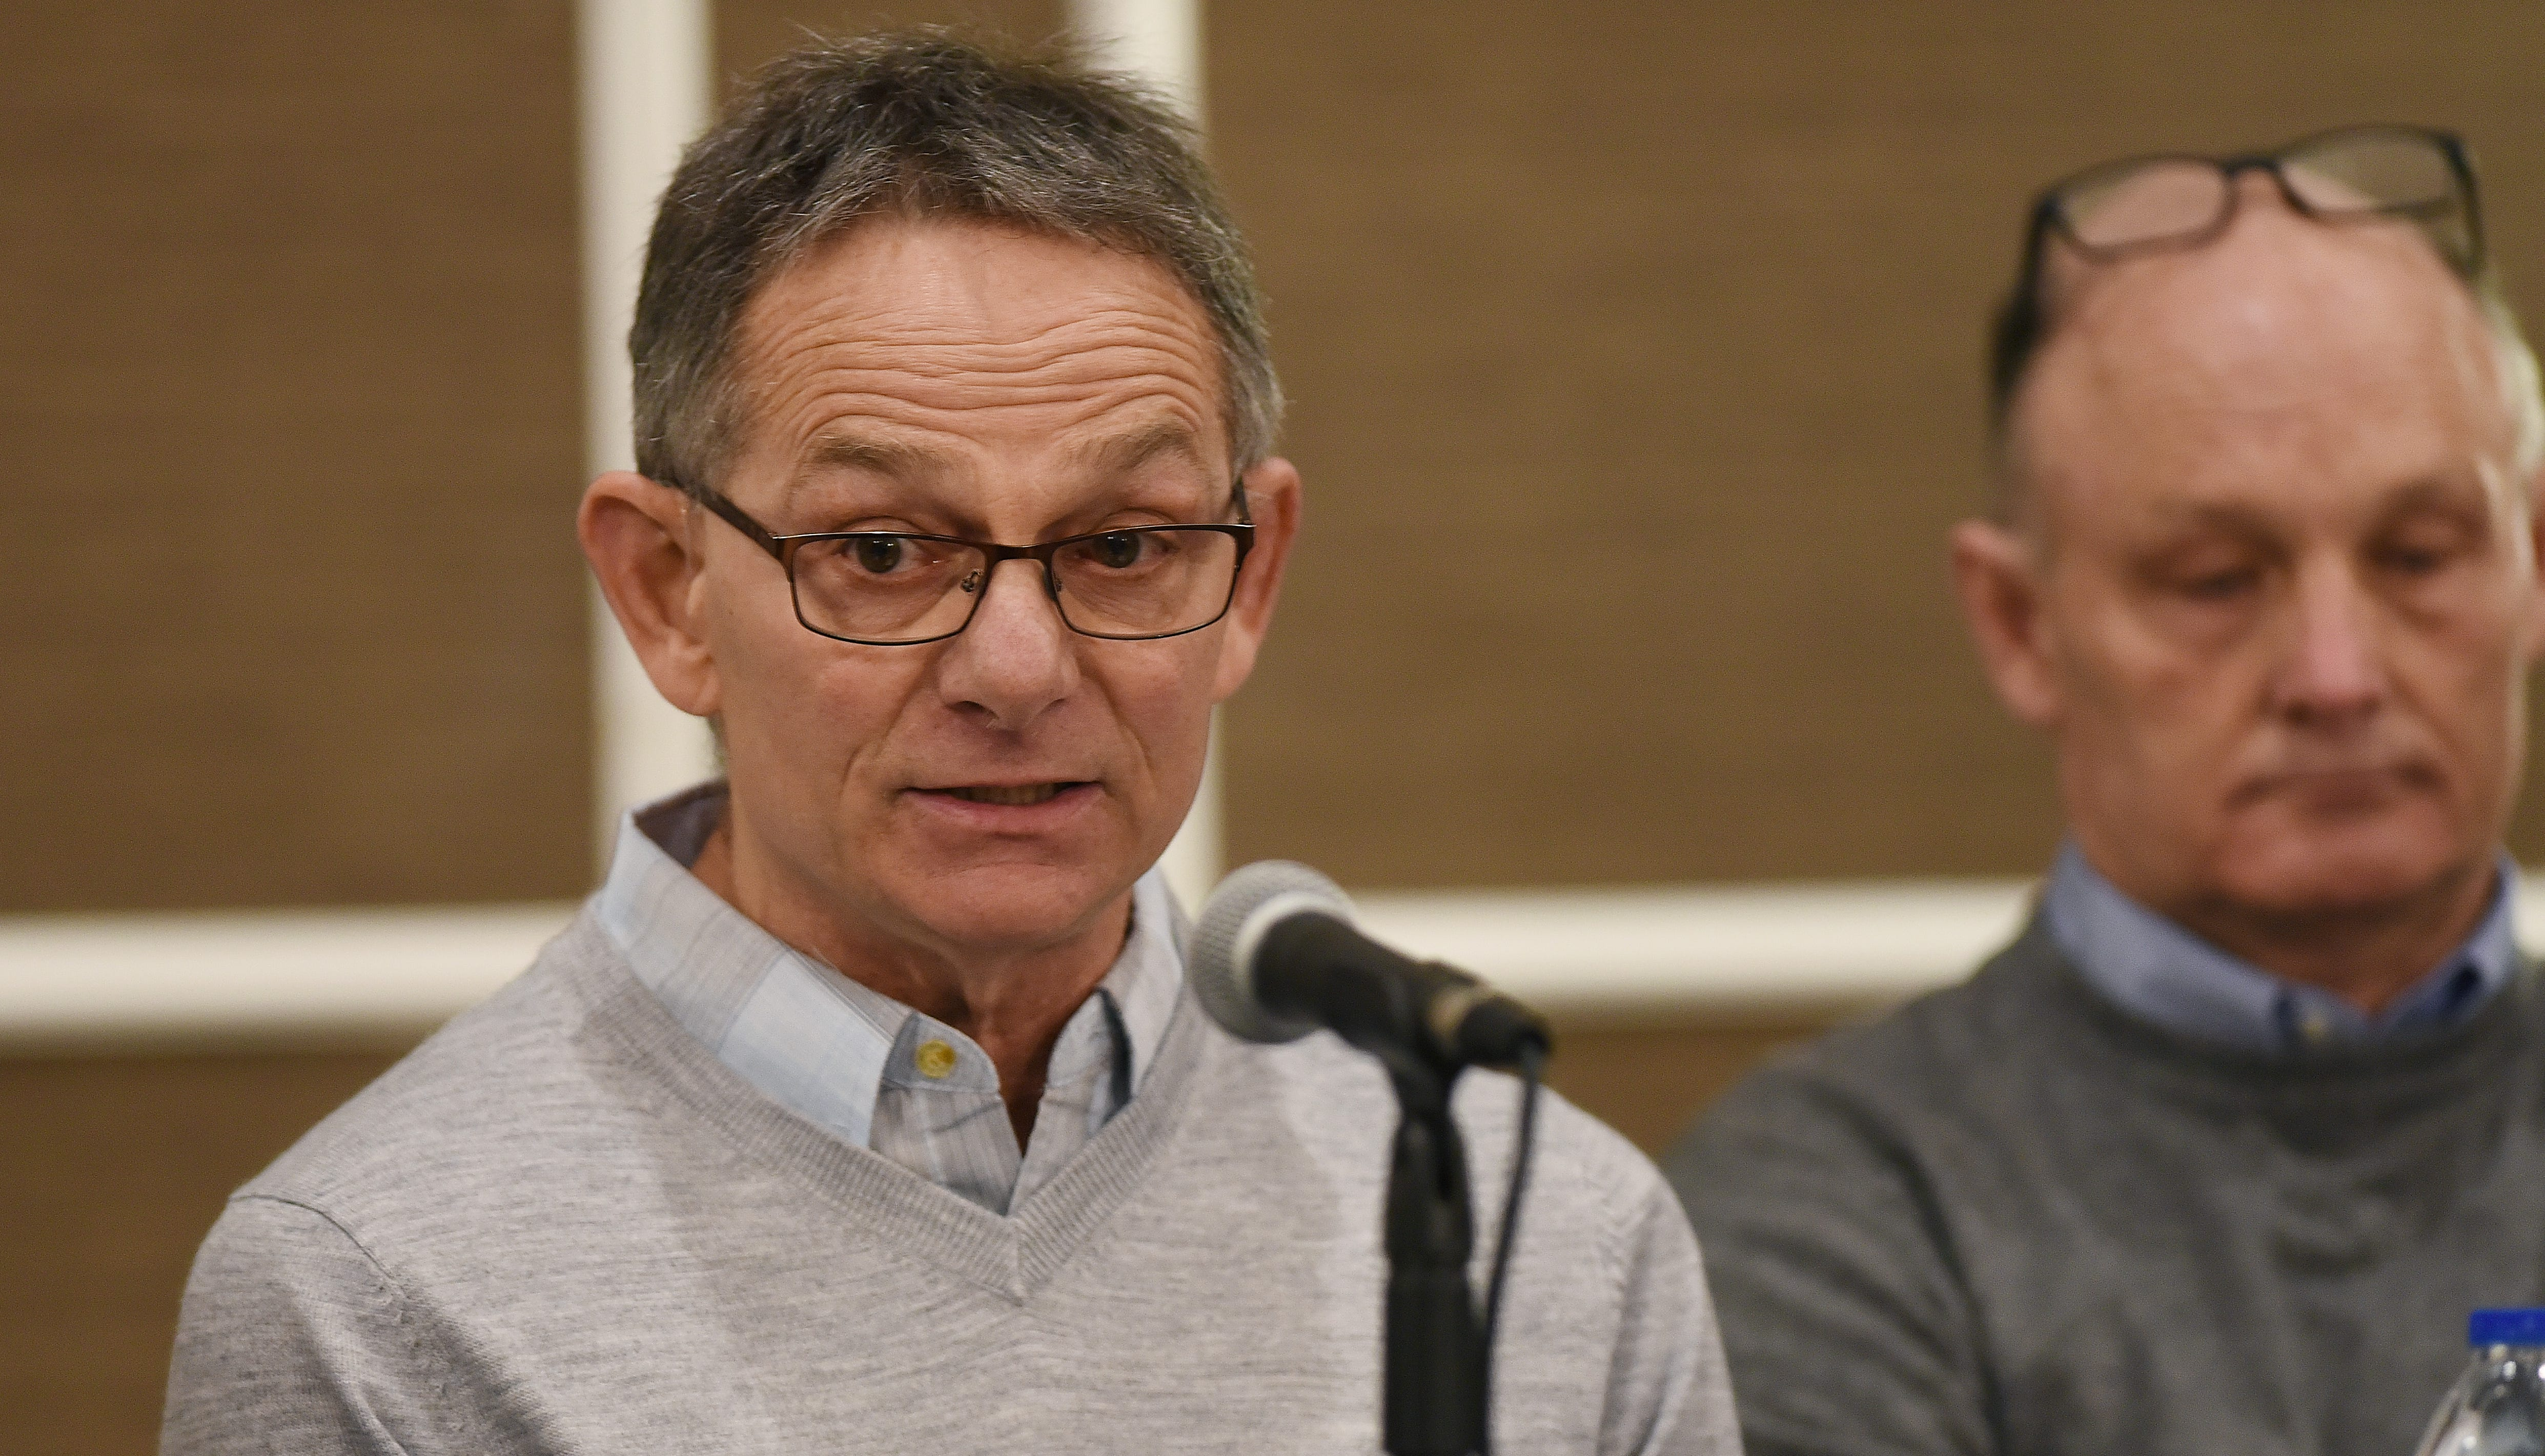 Former University of Michigan wrestler Tad Deluca answers questions during a press conference in Southfield on Feb. 27.